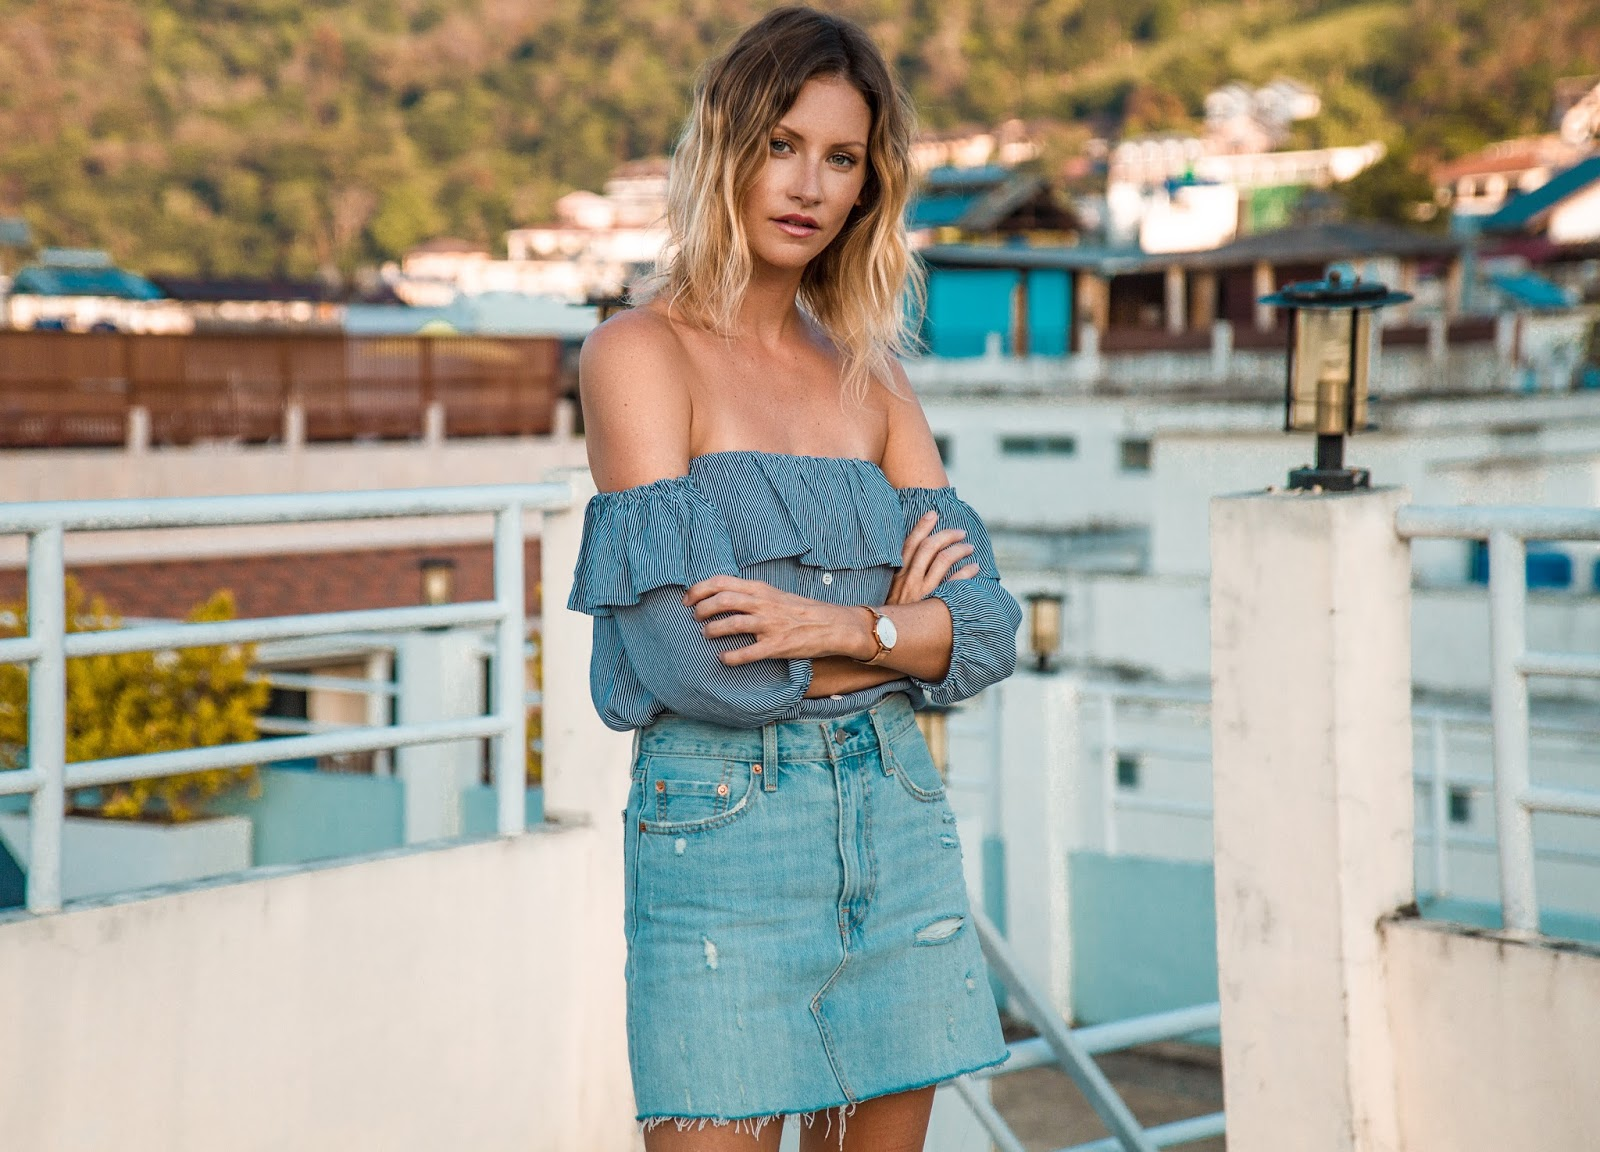 fashion and travel blogger, Alison Hutchinson, in Phuket Thailand, wearing a Faithfull the Brand off the shoulder top and Levi's deconstructed denim skirt